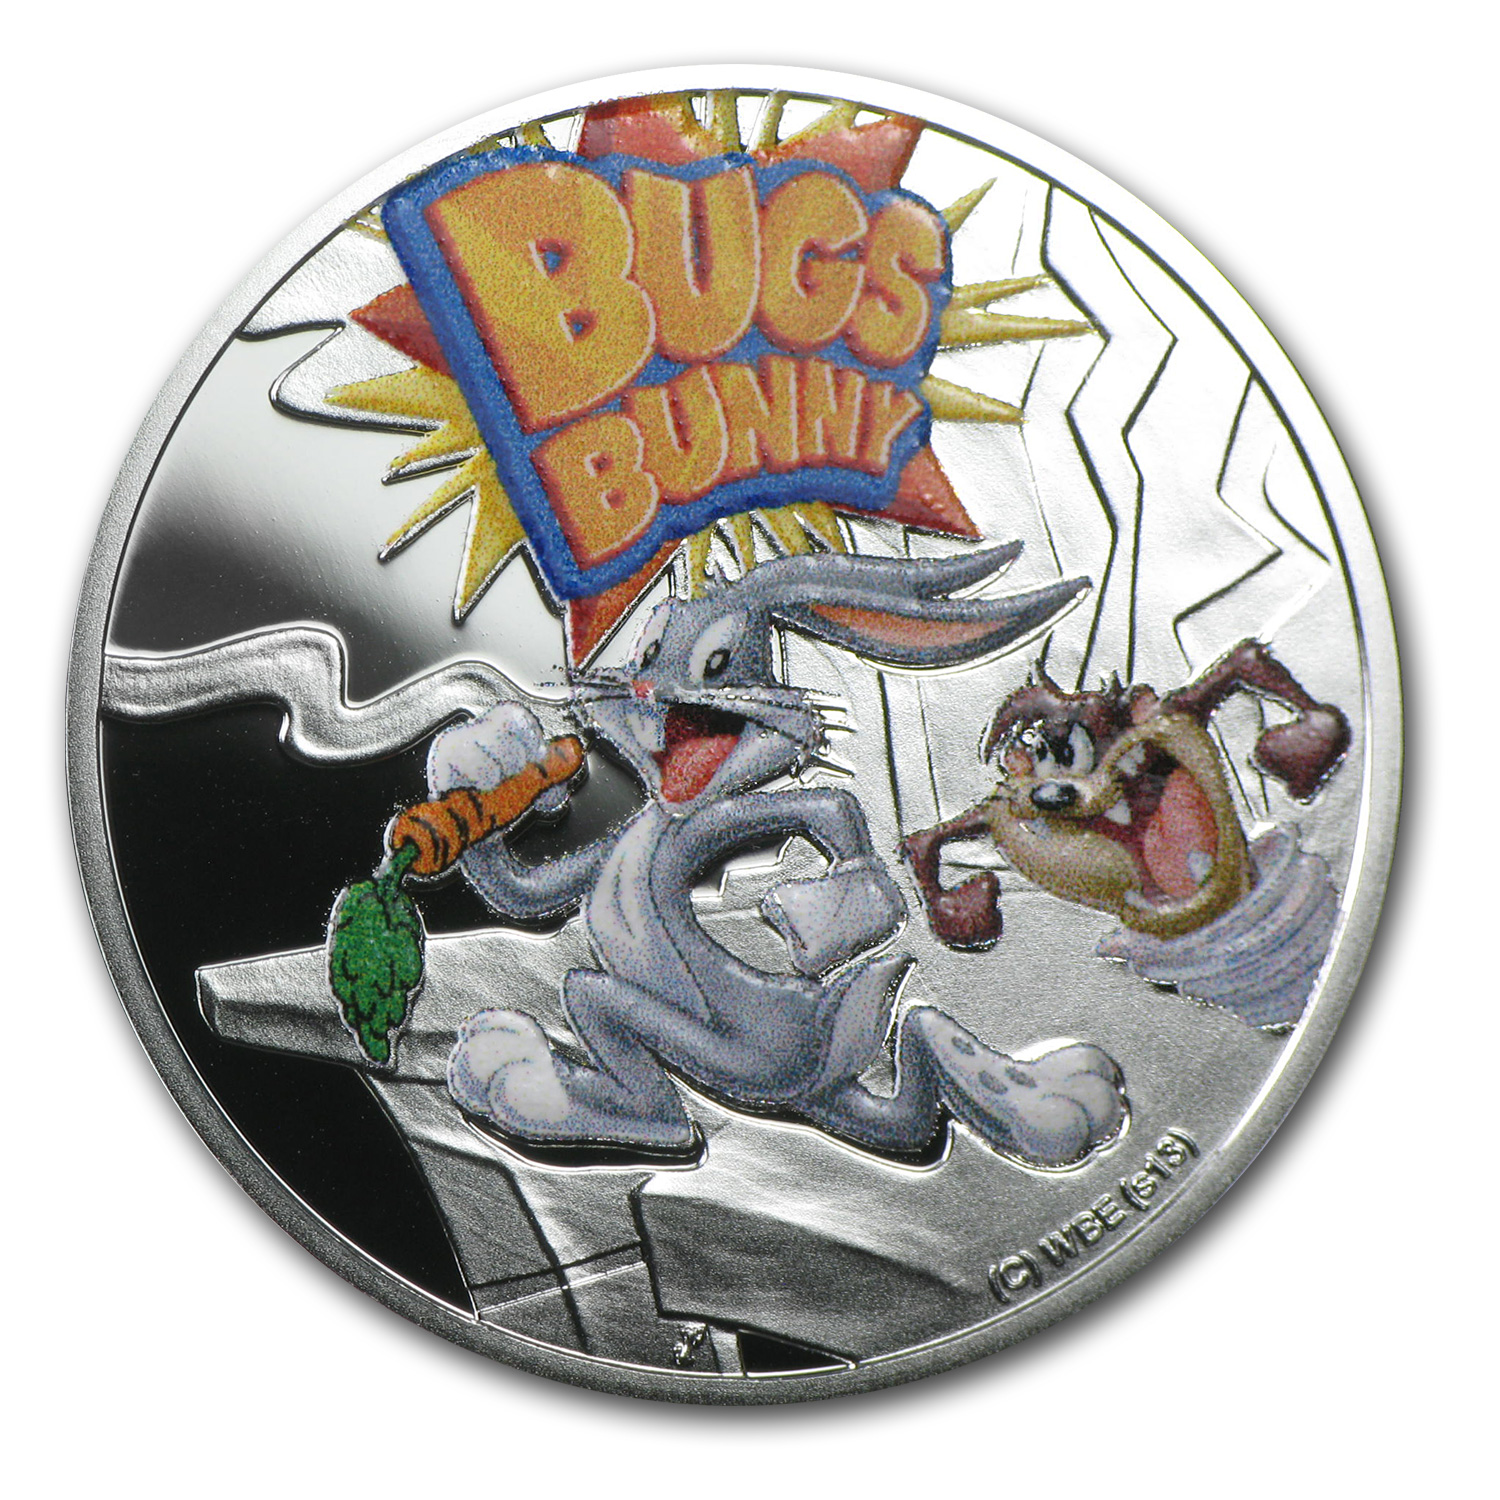 2013 Niue Proof Silver $1 Cartoon Characters Bugs Bunny